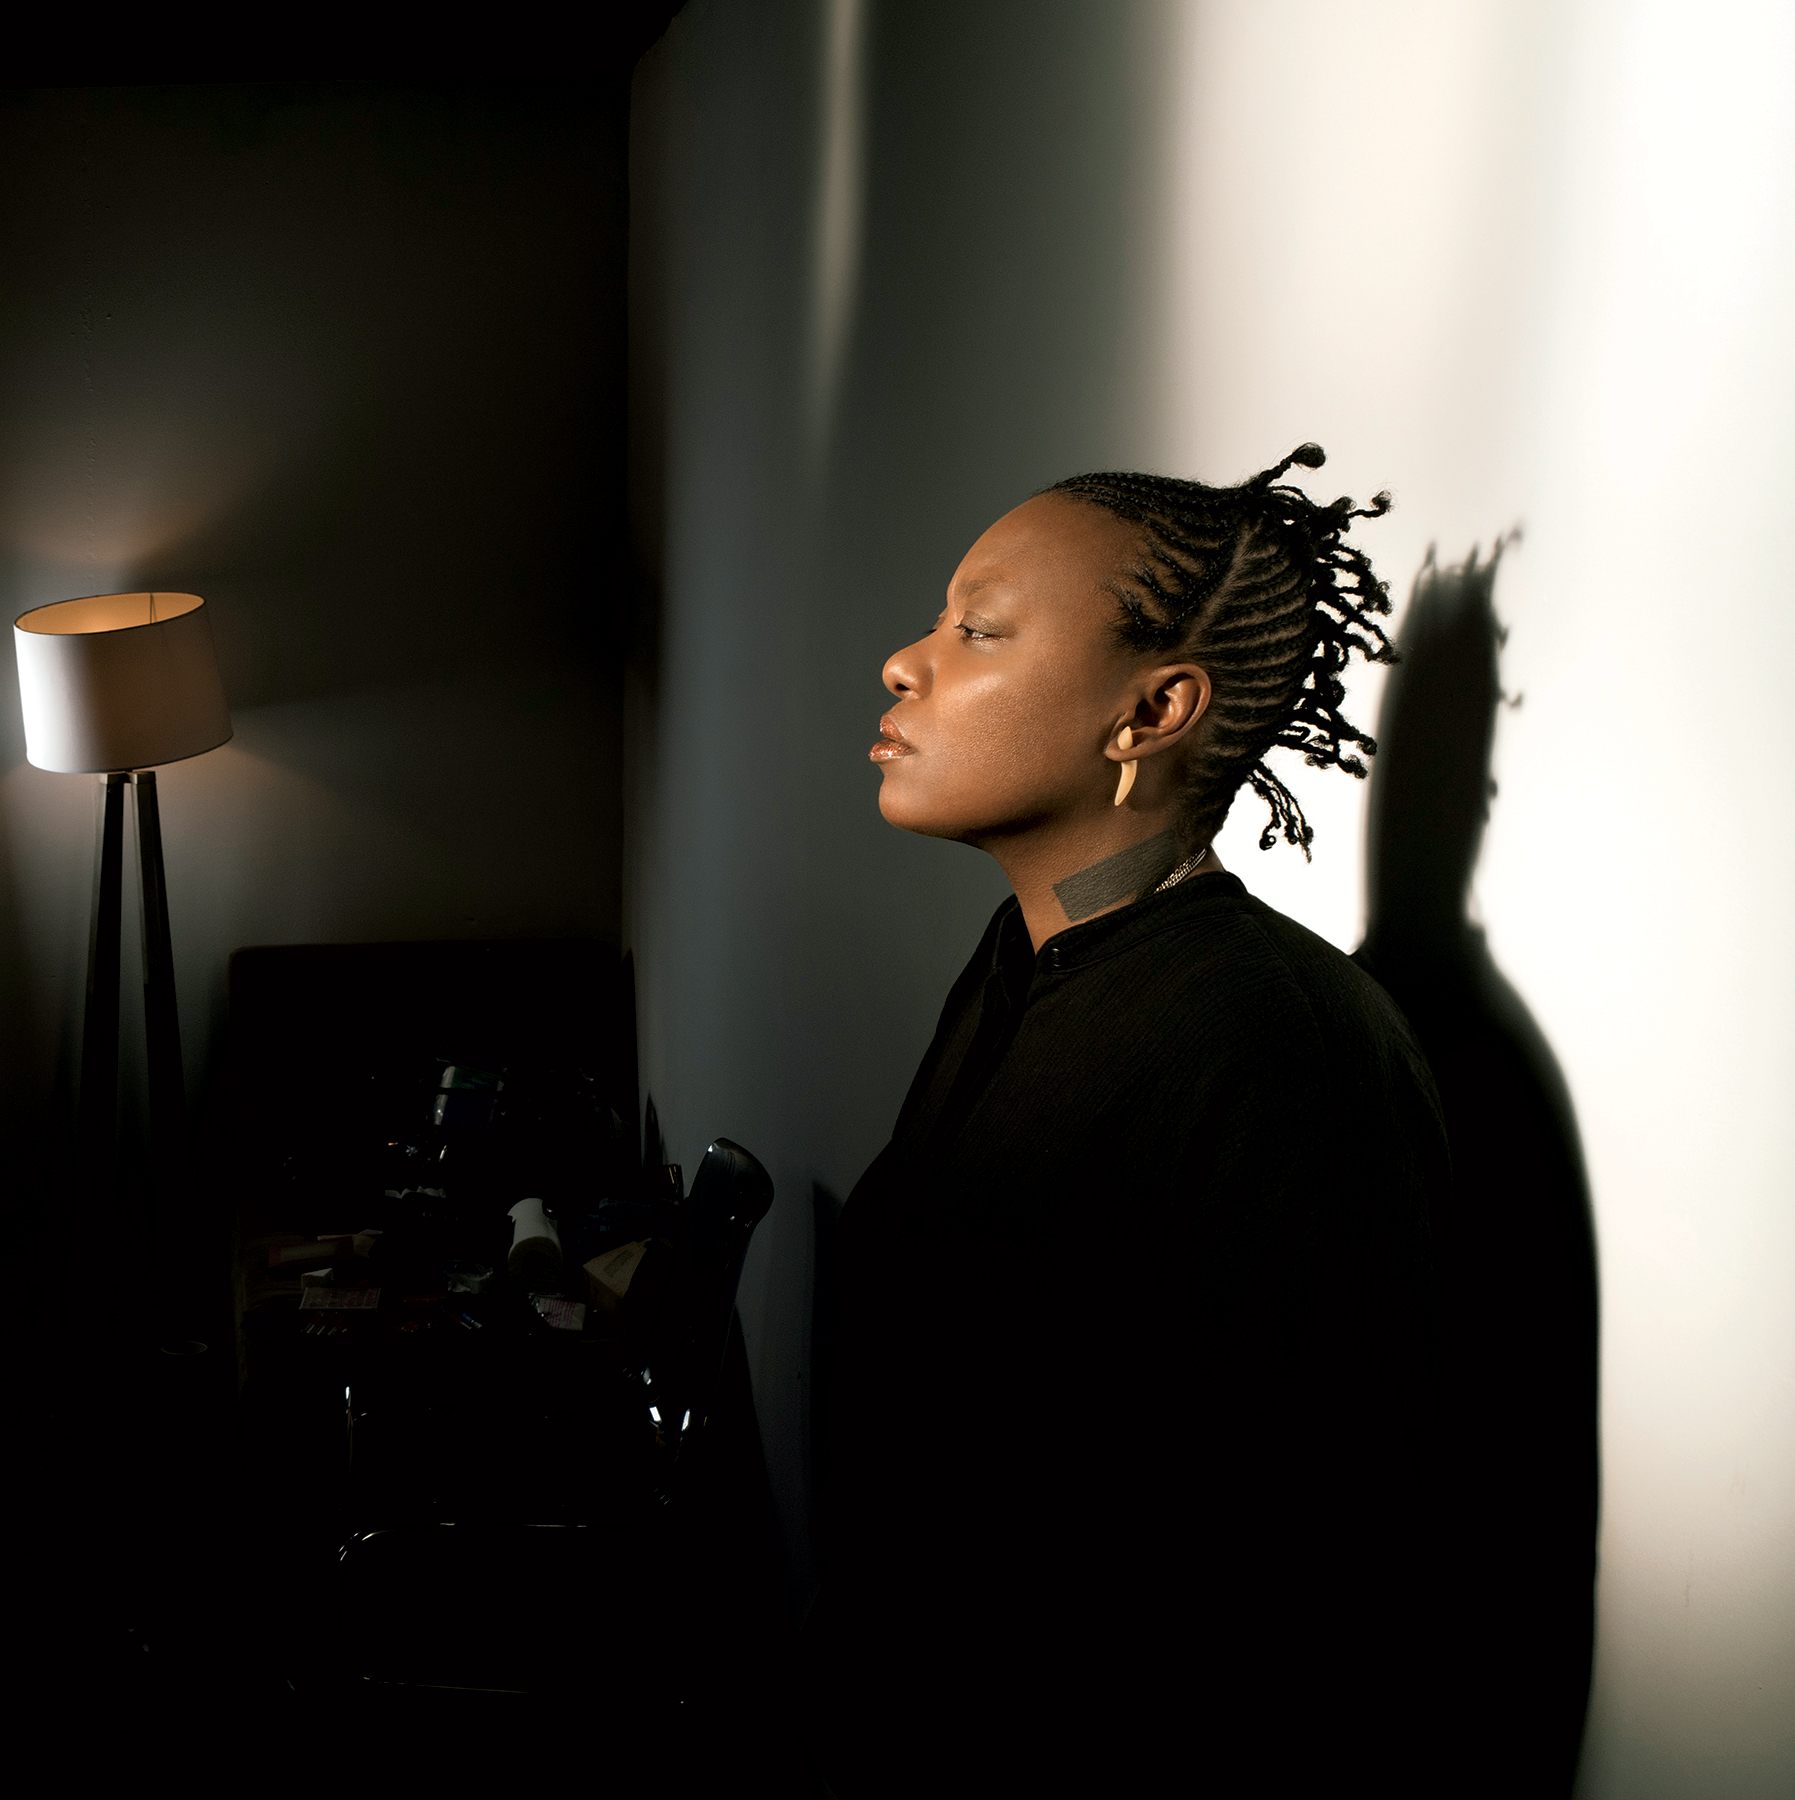 Photograph of Ndegeocello by Charlie Gross.